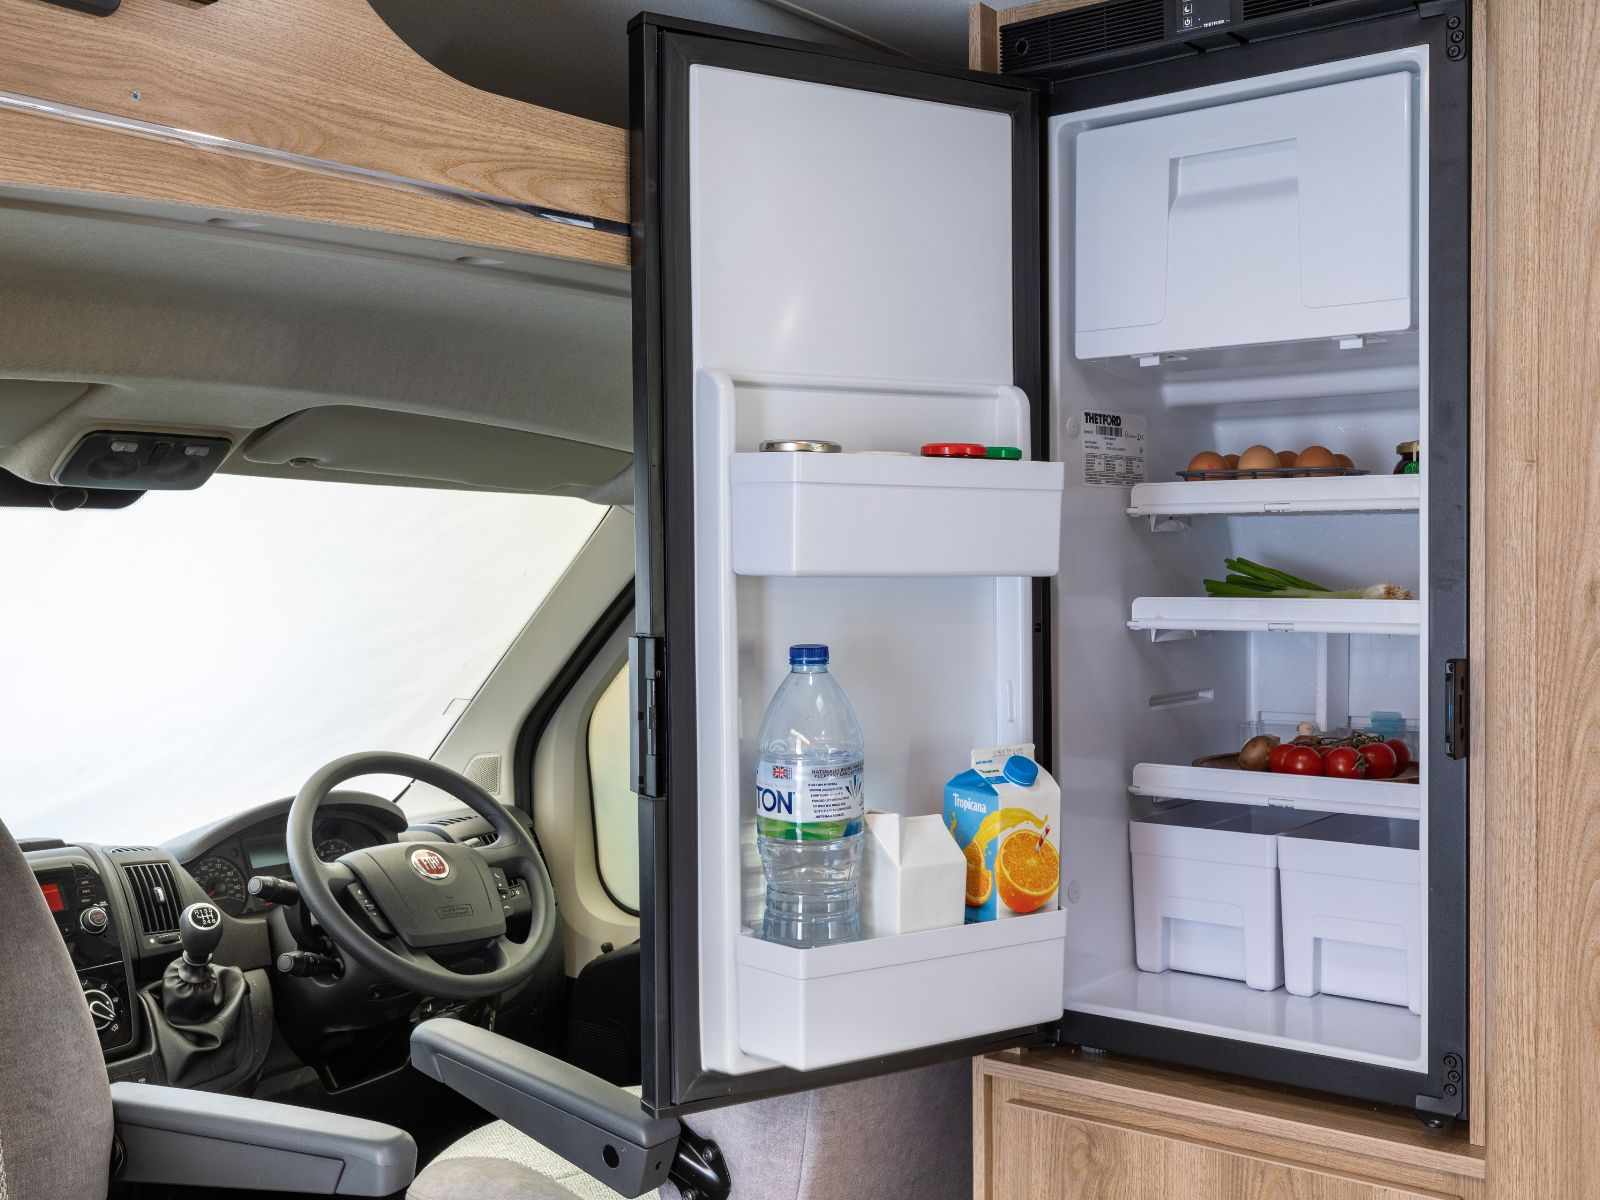 Open fridge with steering wheel in background'